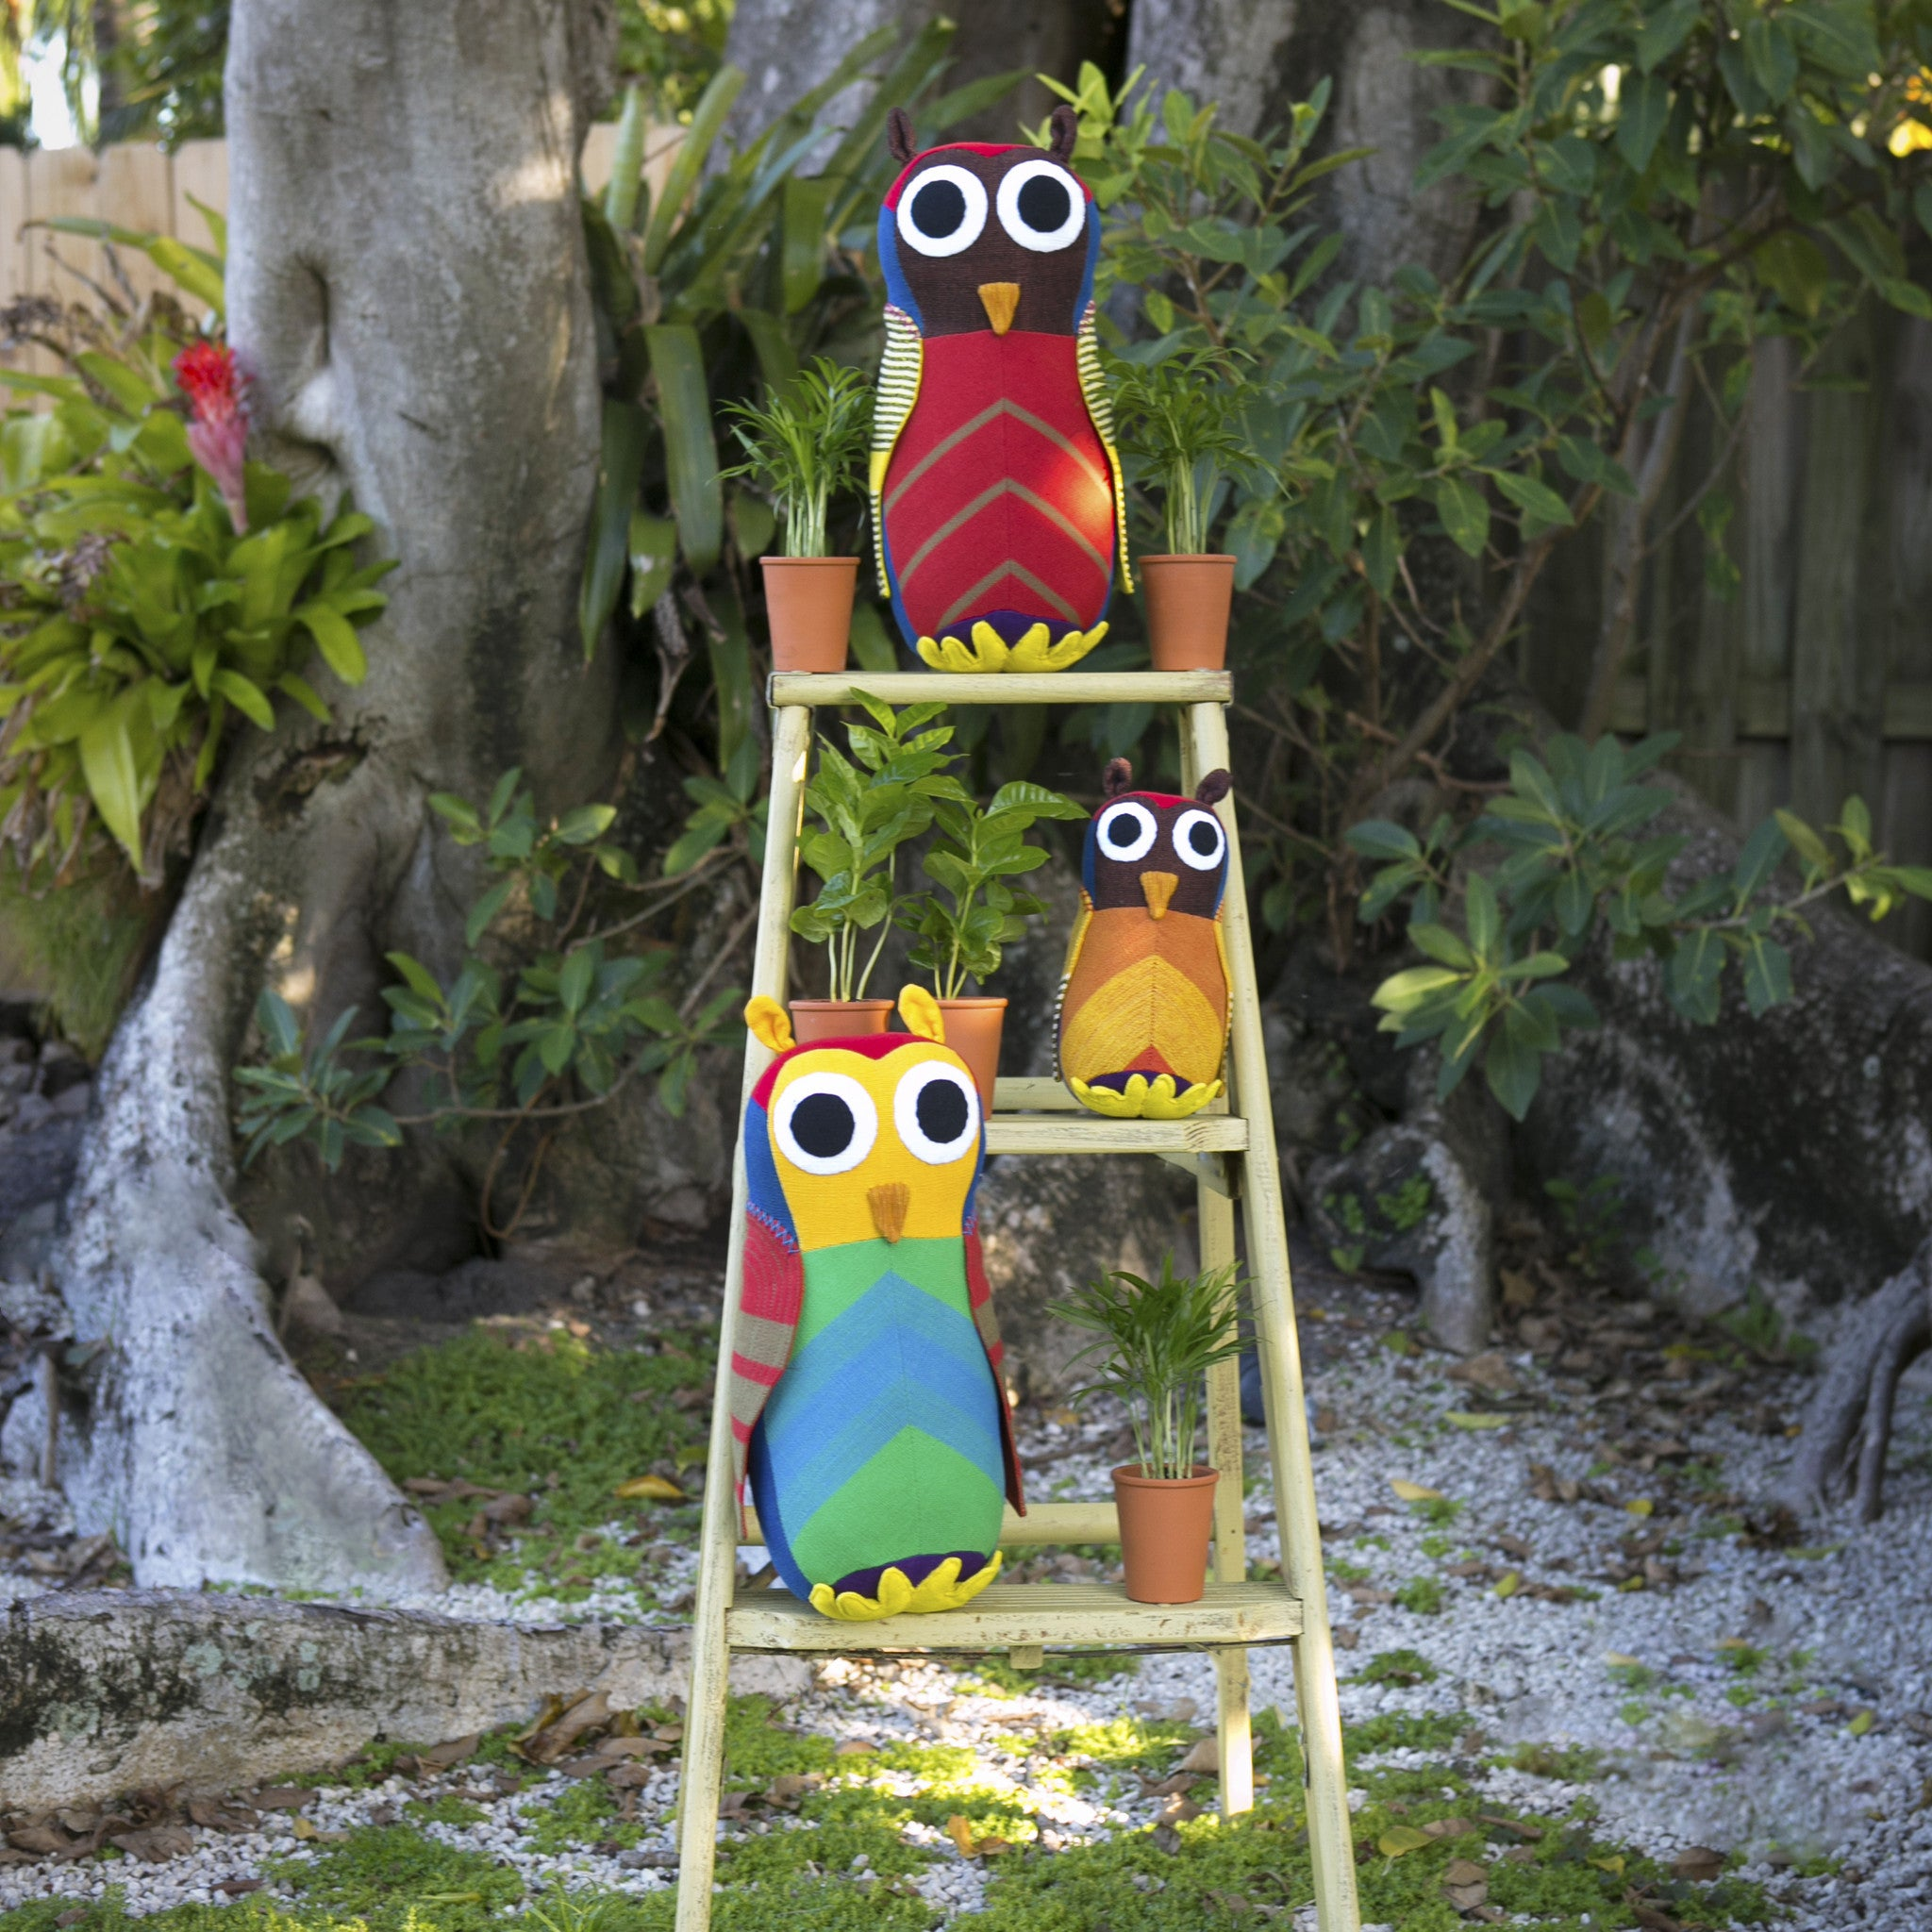 The Owl family is ready to make a hoot! (Harold & Harvey shown in large size and Homer in small size)